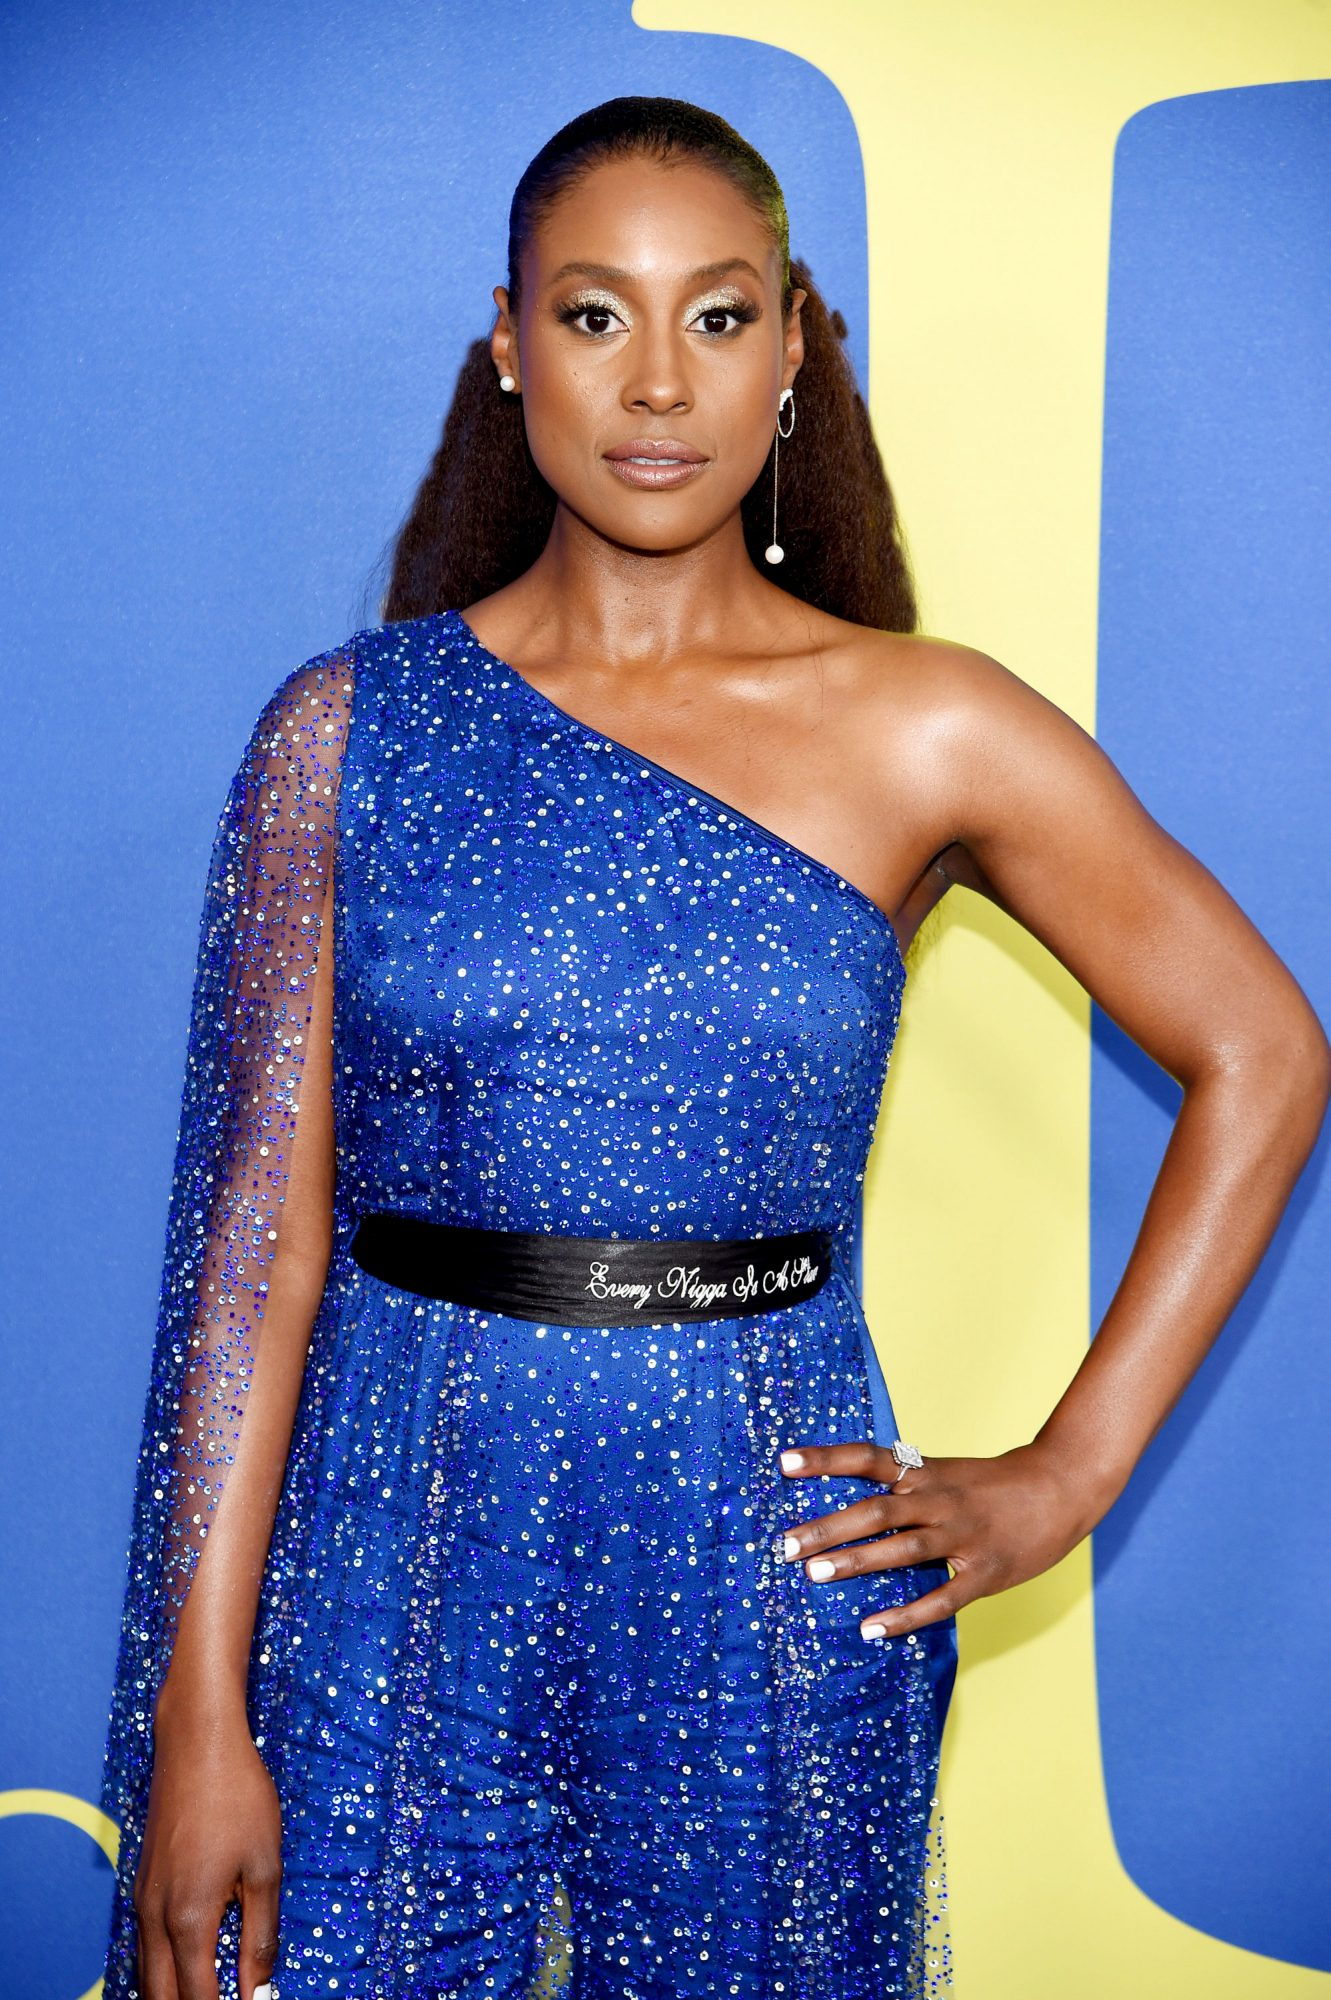 STATEMENT MAKERS: ISSA RAE